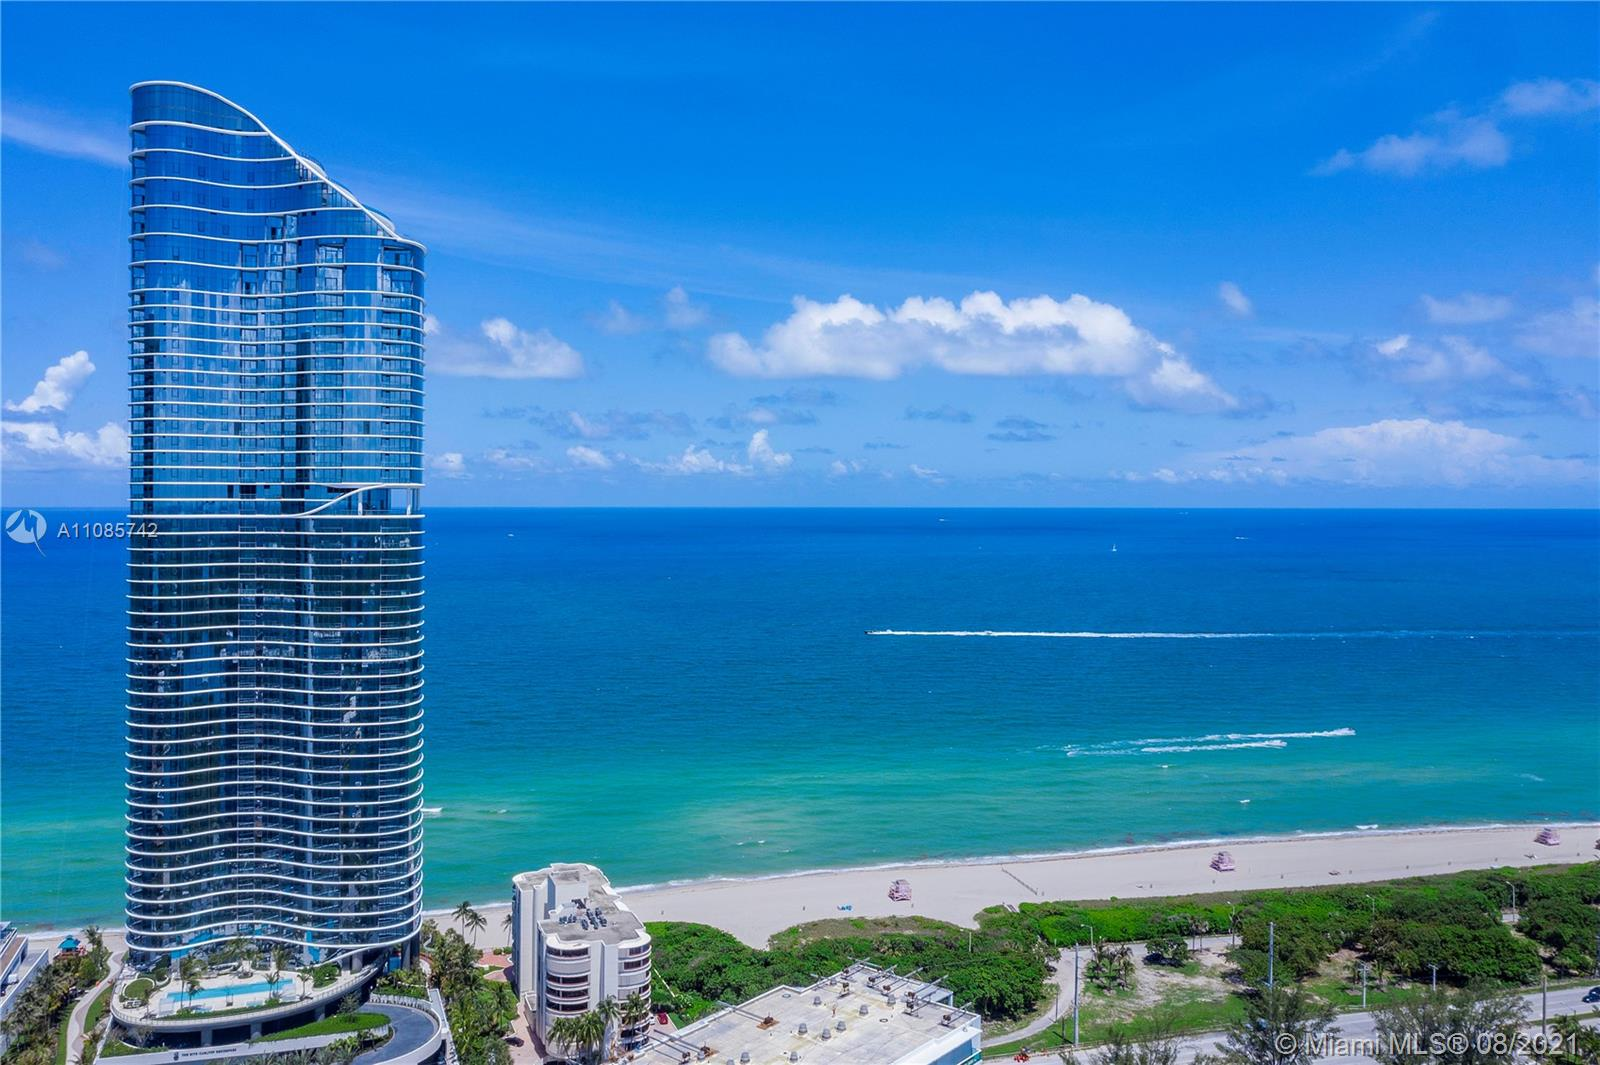 15701 Collins Ave, Unit #4105 Luxury Real Estate